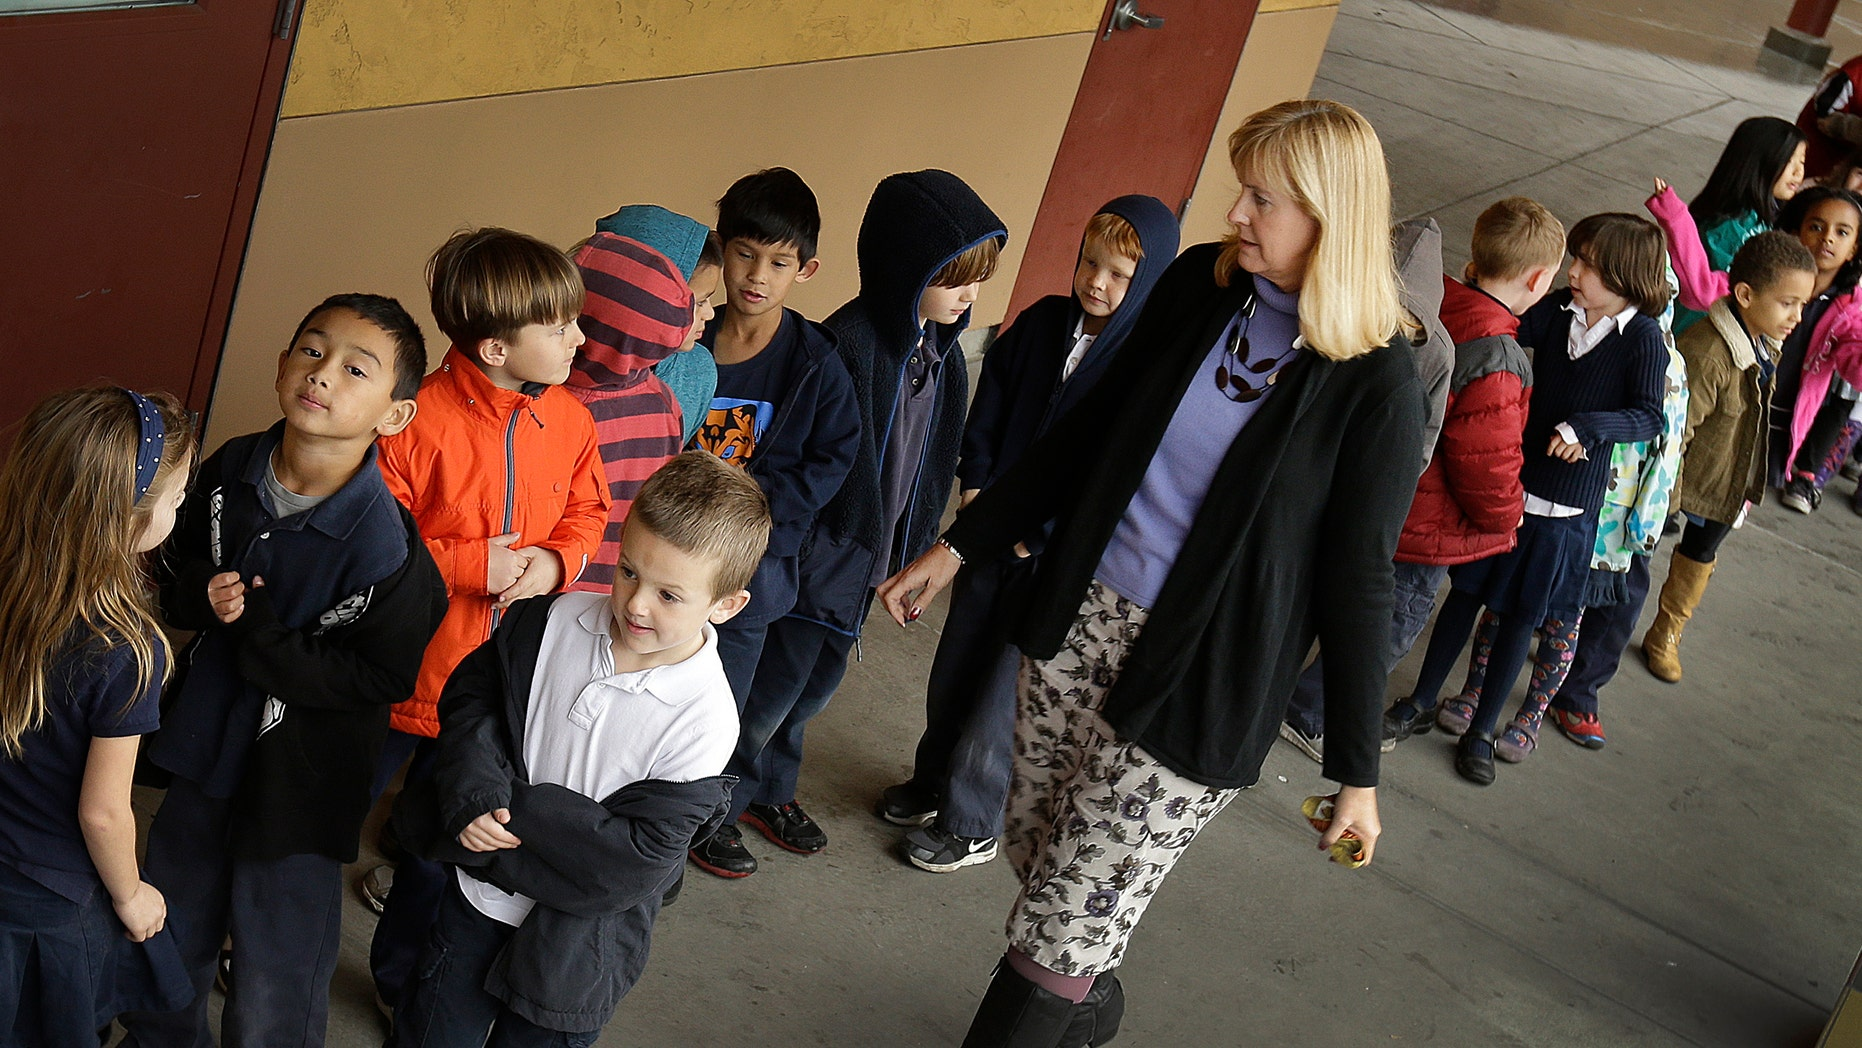 FILE - In this July 24, 2013 file photo, first grade teacher Lynda Jensen walks with her class of 30 children at Willow Glenn Elementary School in San Jose, Calif. Minority and low-income parents are more likely to see serious problems in their schools, from low expectations to bullying and out-of-date technology and textbooks, than those who are affluent or white, according to an Associated Press-NORC Center for Public Affairs Research Poll. The divisions fall along the familiar fault lines of income, education and race that drive so much of American life. (AP Photo/Ben Margot, File)